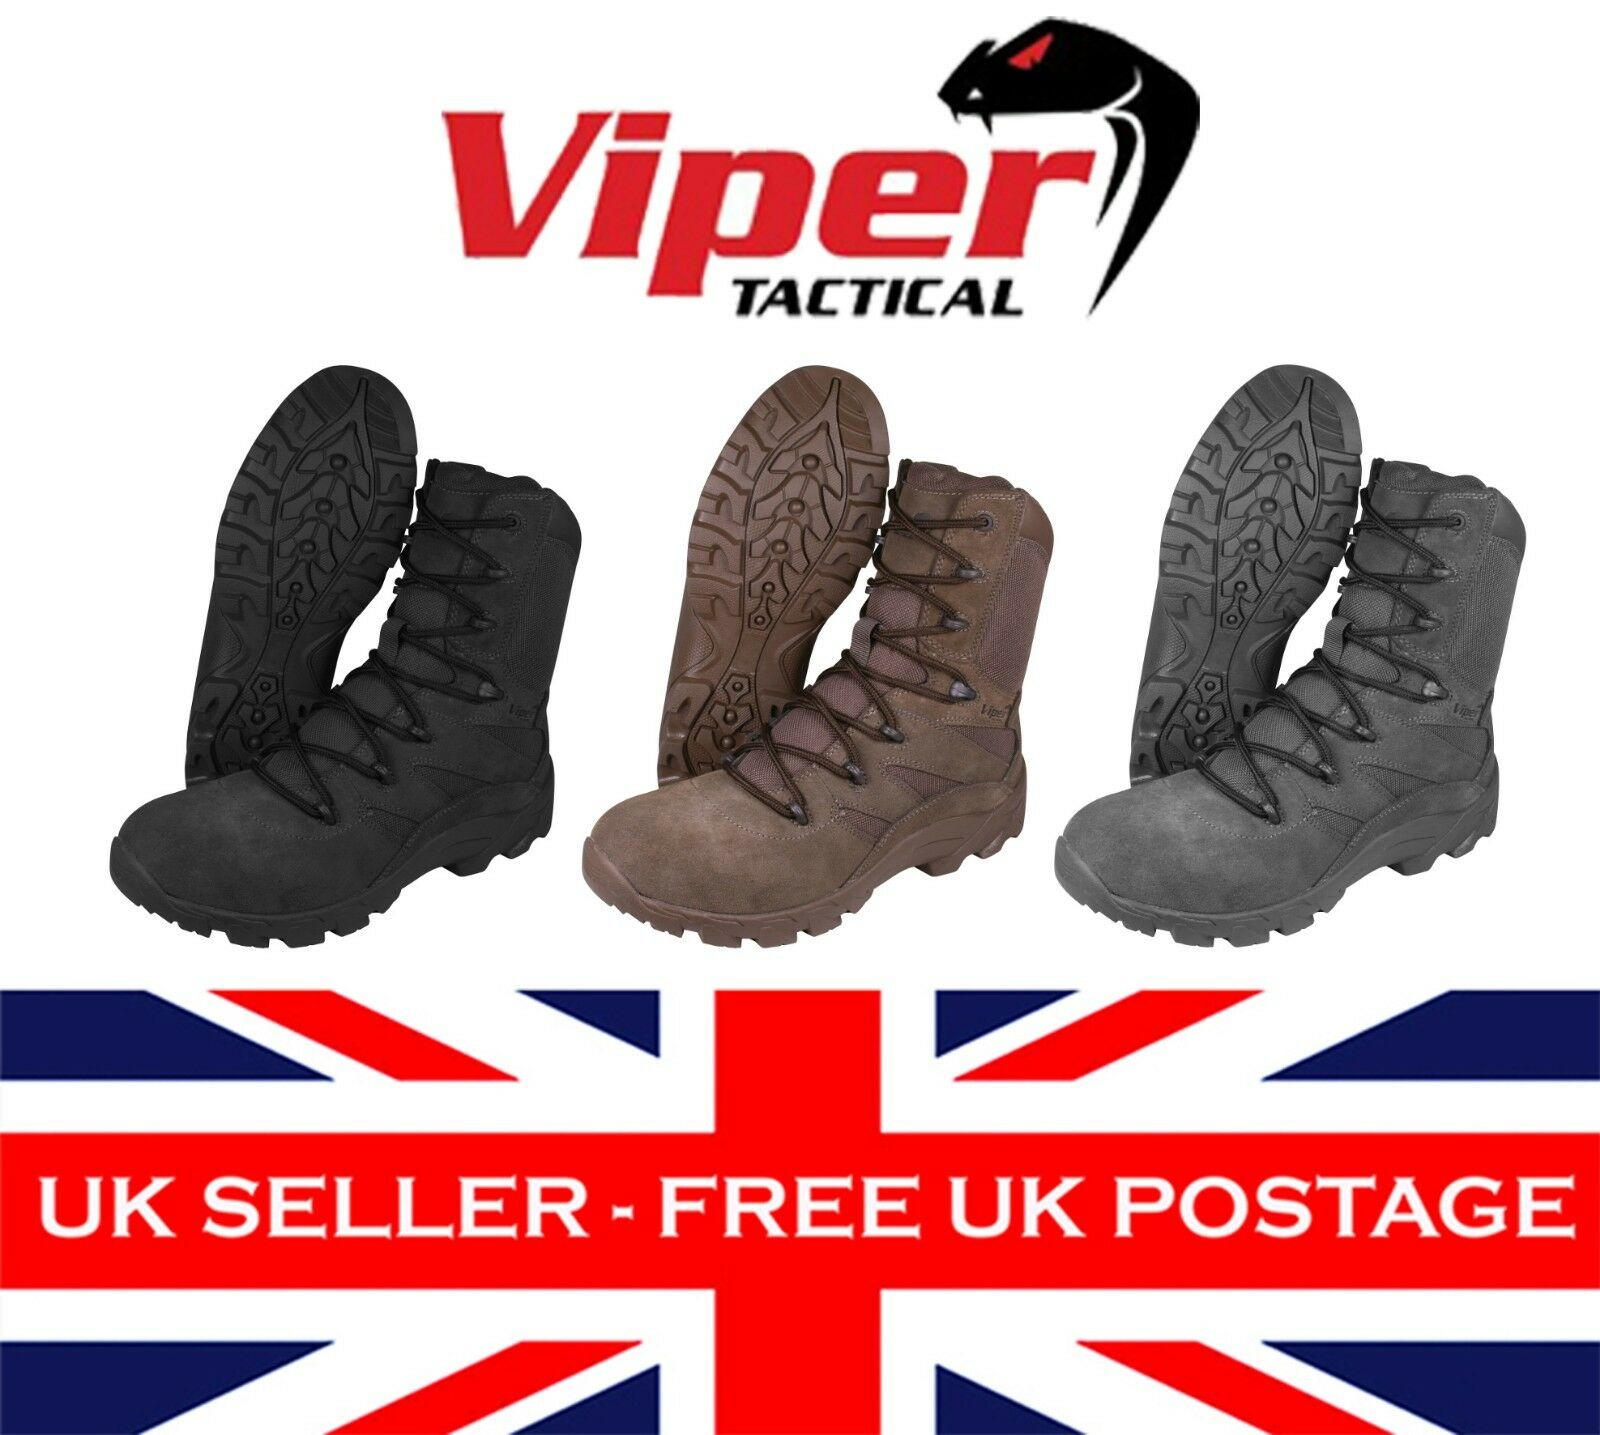 Viper CoGrün Stiefel Lightweight Tactical Military Army Combat Cadet Airsoft UK